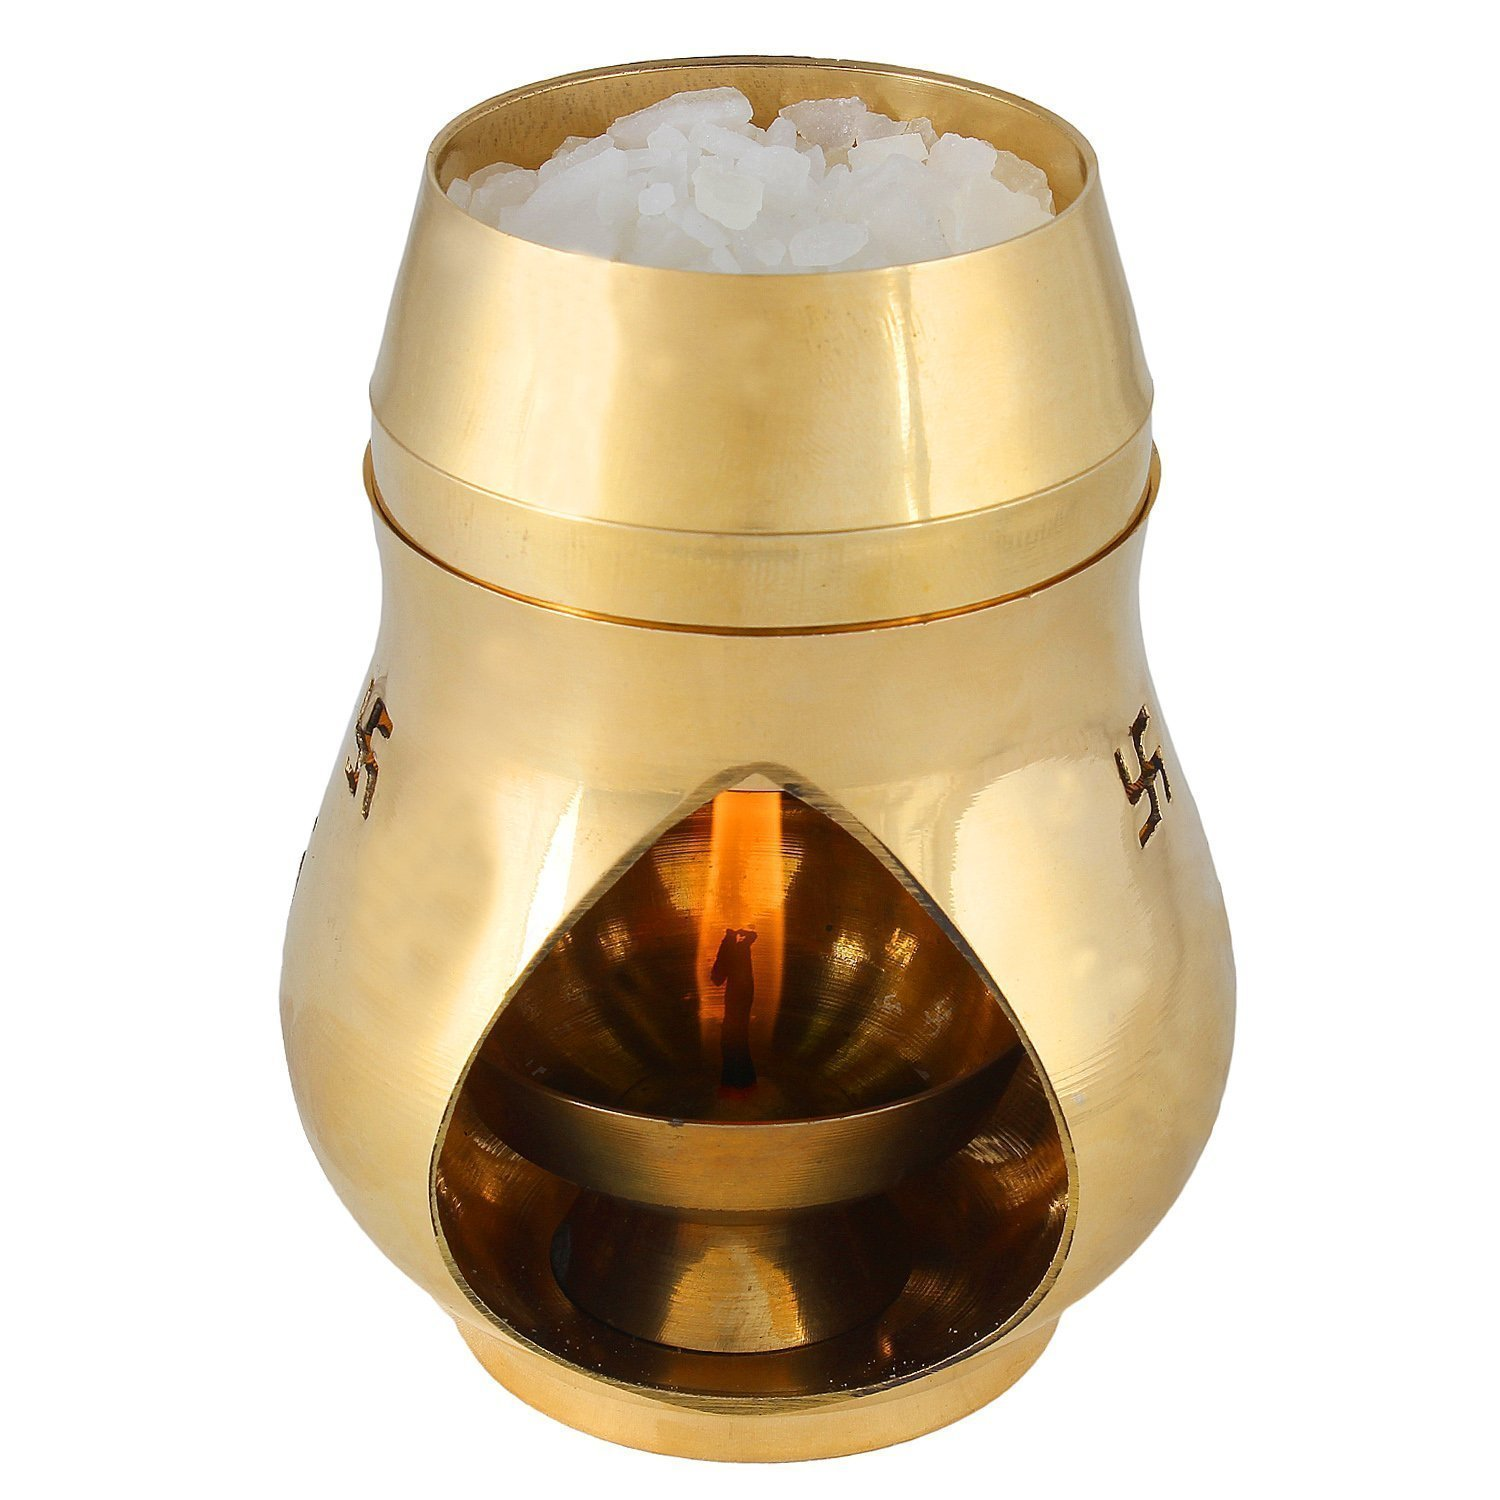 Odishabazaar Positive Aura Brass Camphor Lamp- Protect House From All Negative Energies (gold) by Odishabazaar